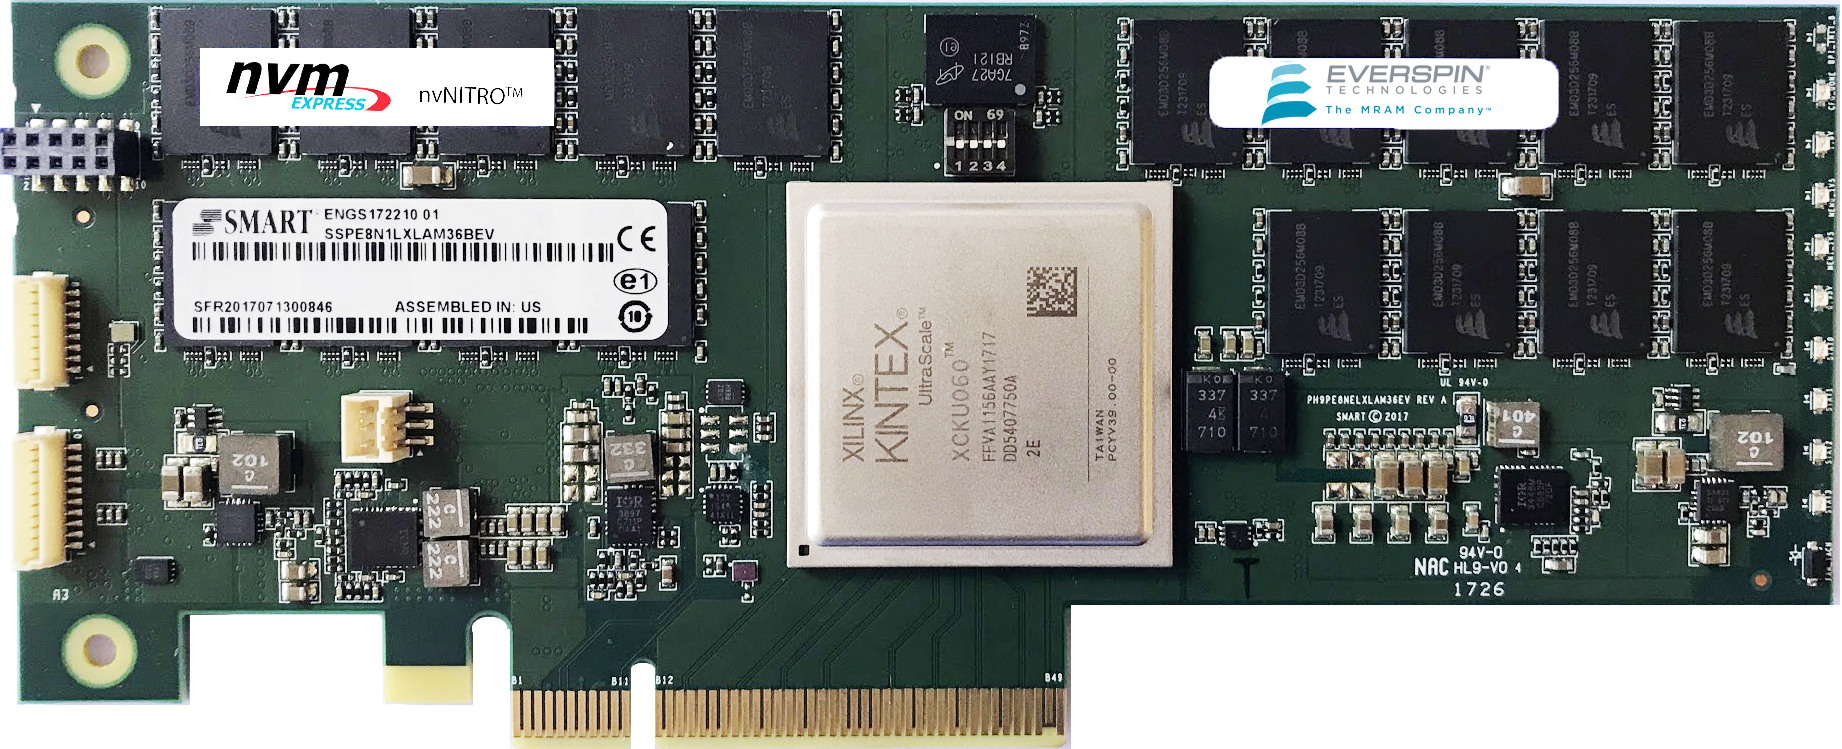 Everspin Announces Production Release of 1 and 2 Gigabyte